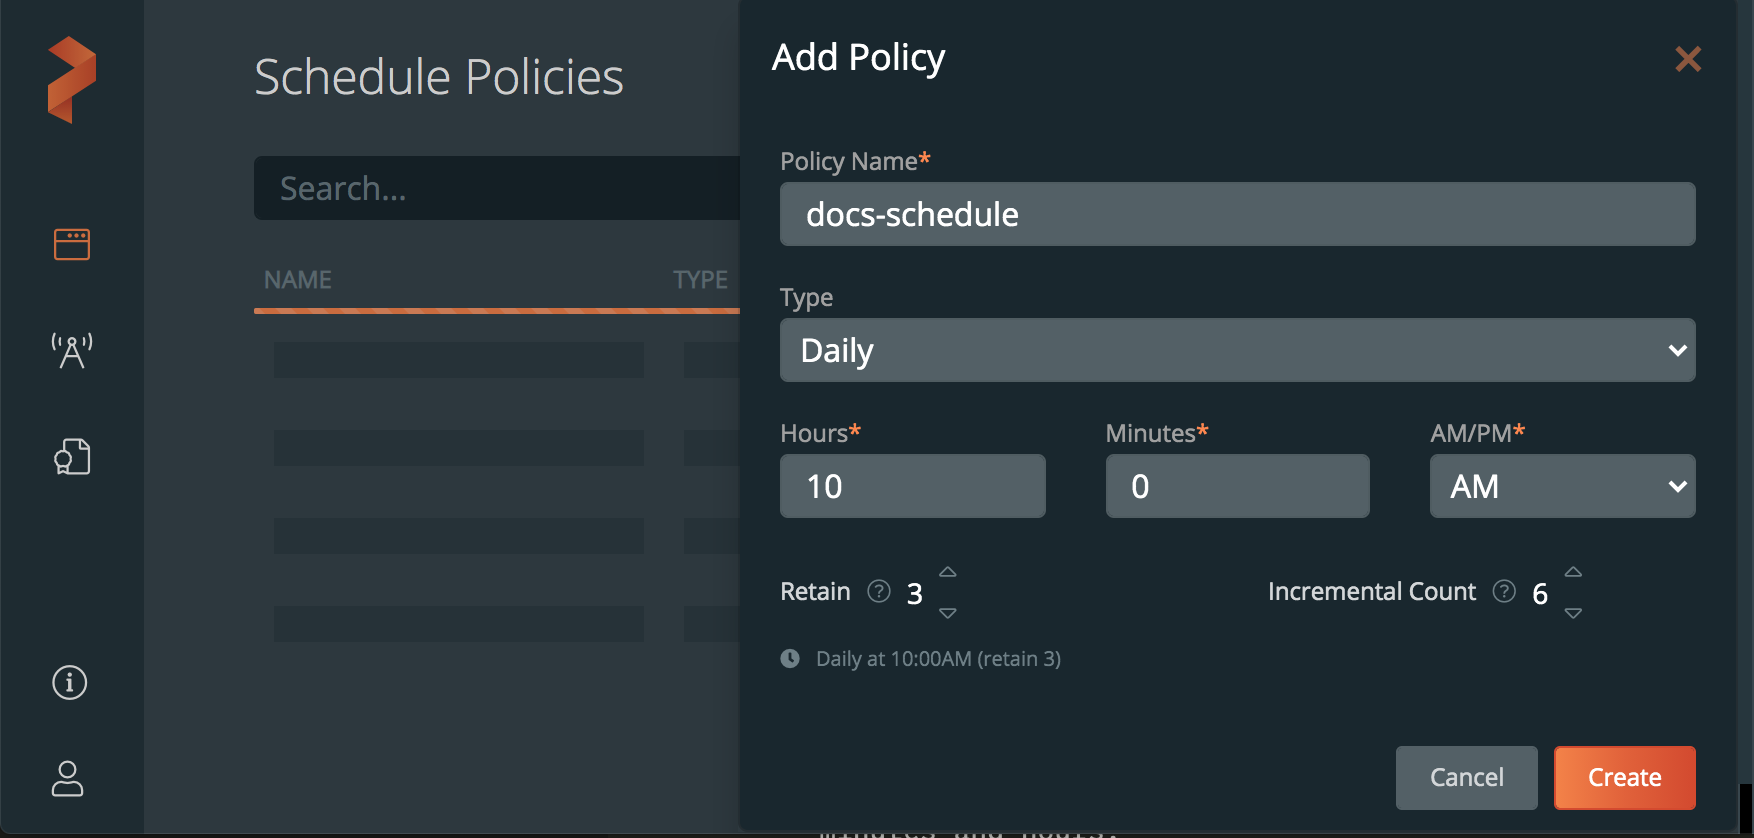 Add schedule policy dialogue